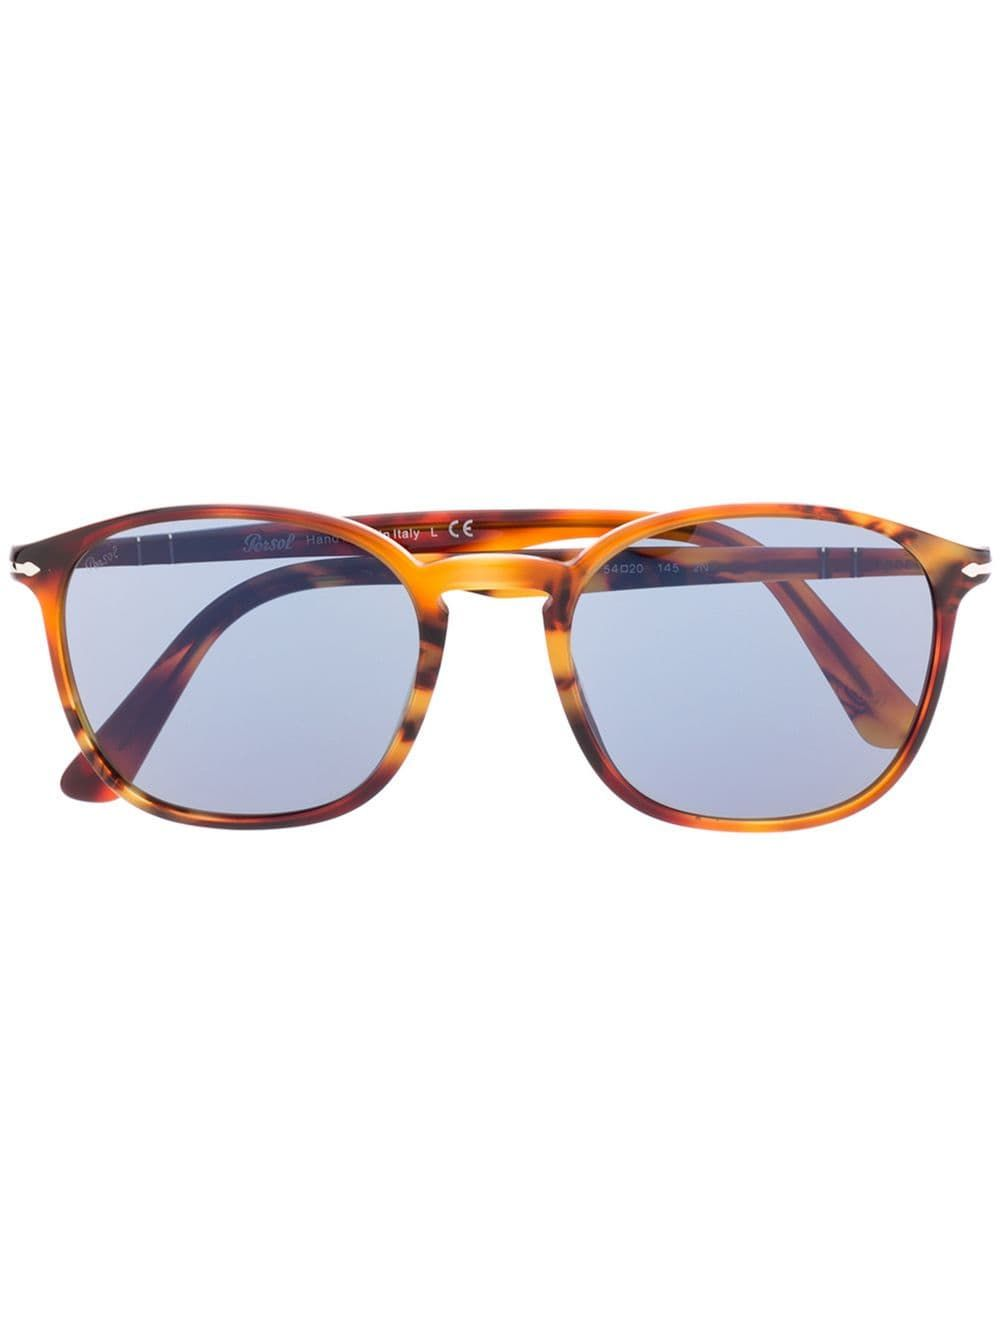 5bc7f86e1290 Persol Cat Eye Frame Sunglasses in 2019   Products   Sunglass frames ...